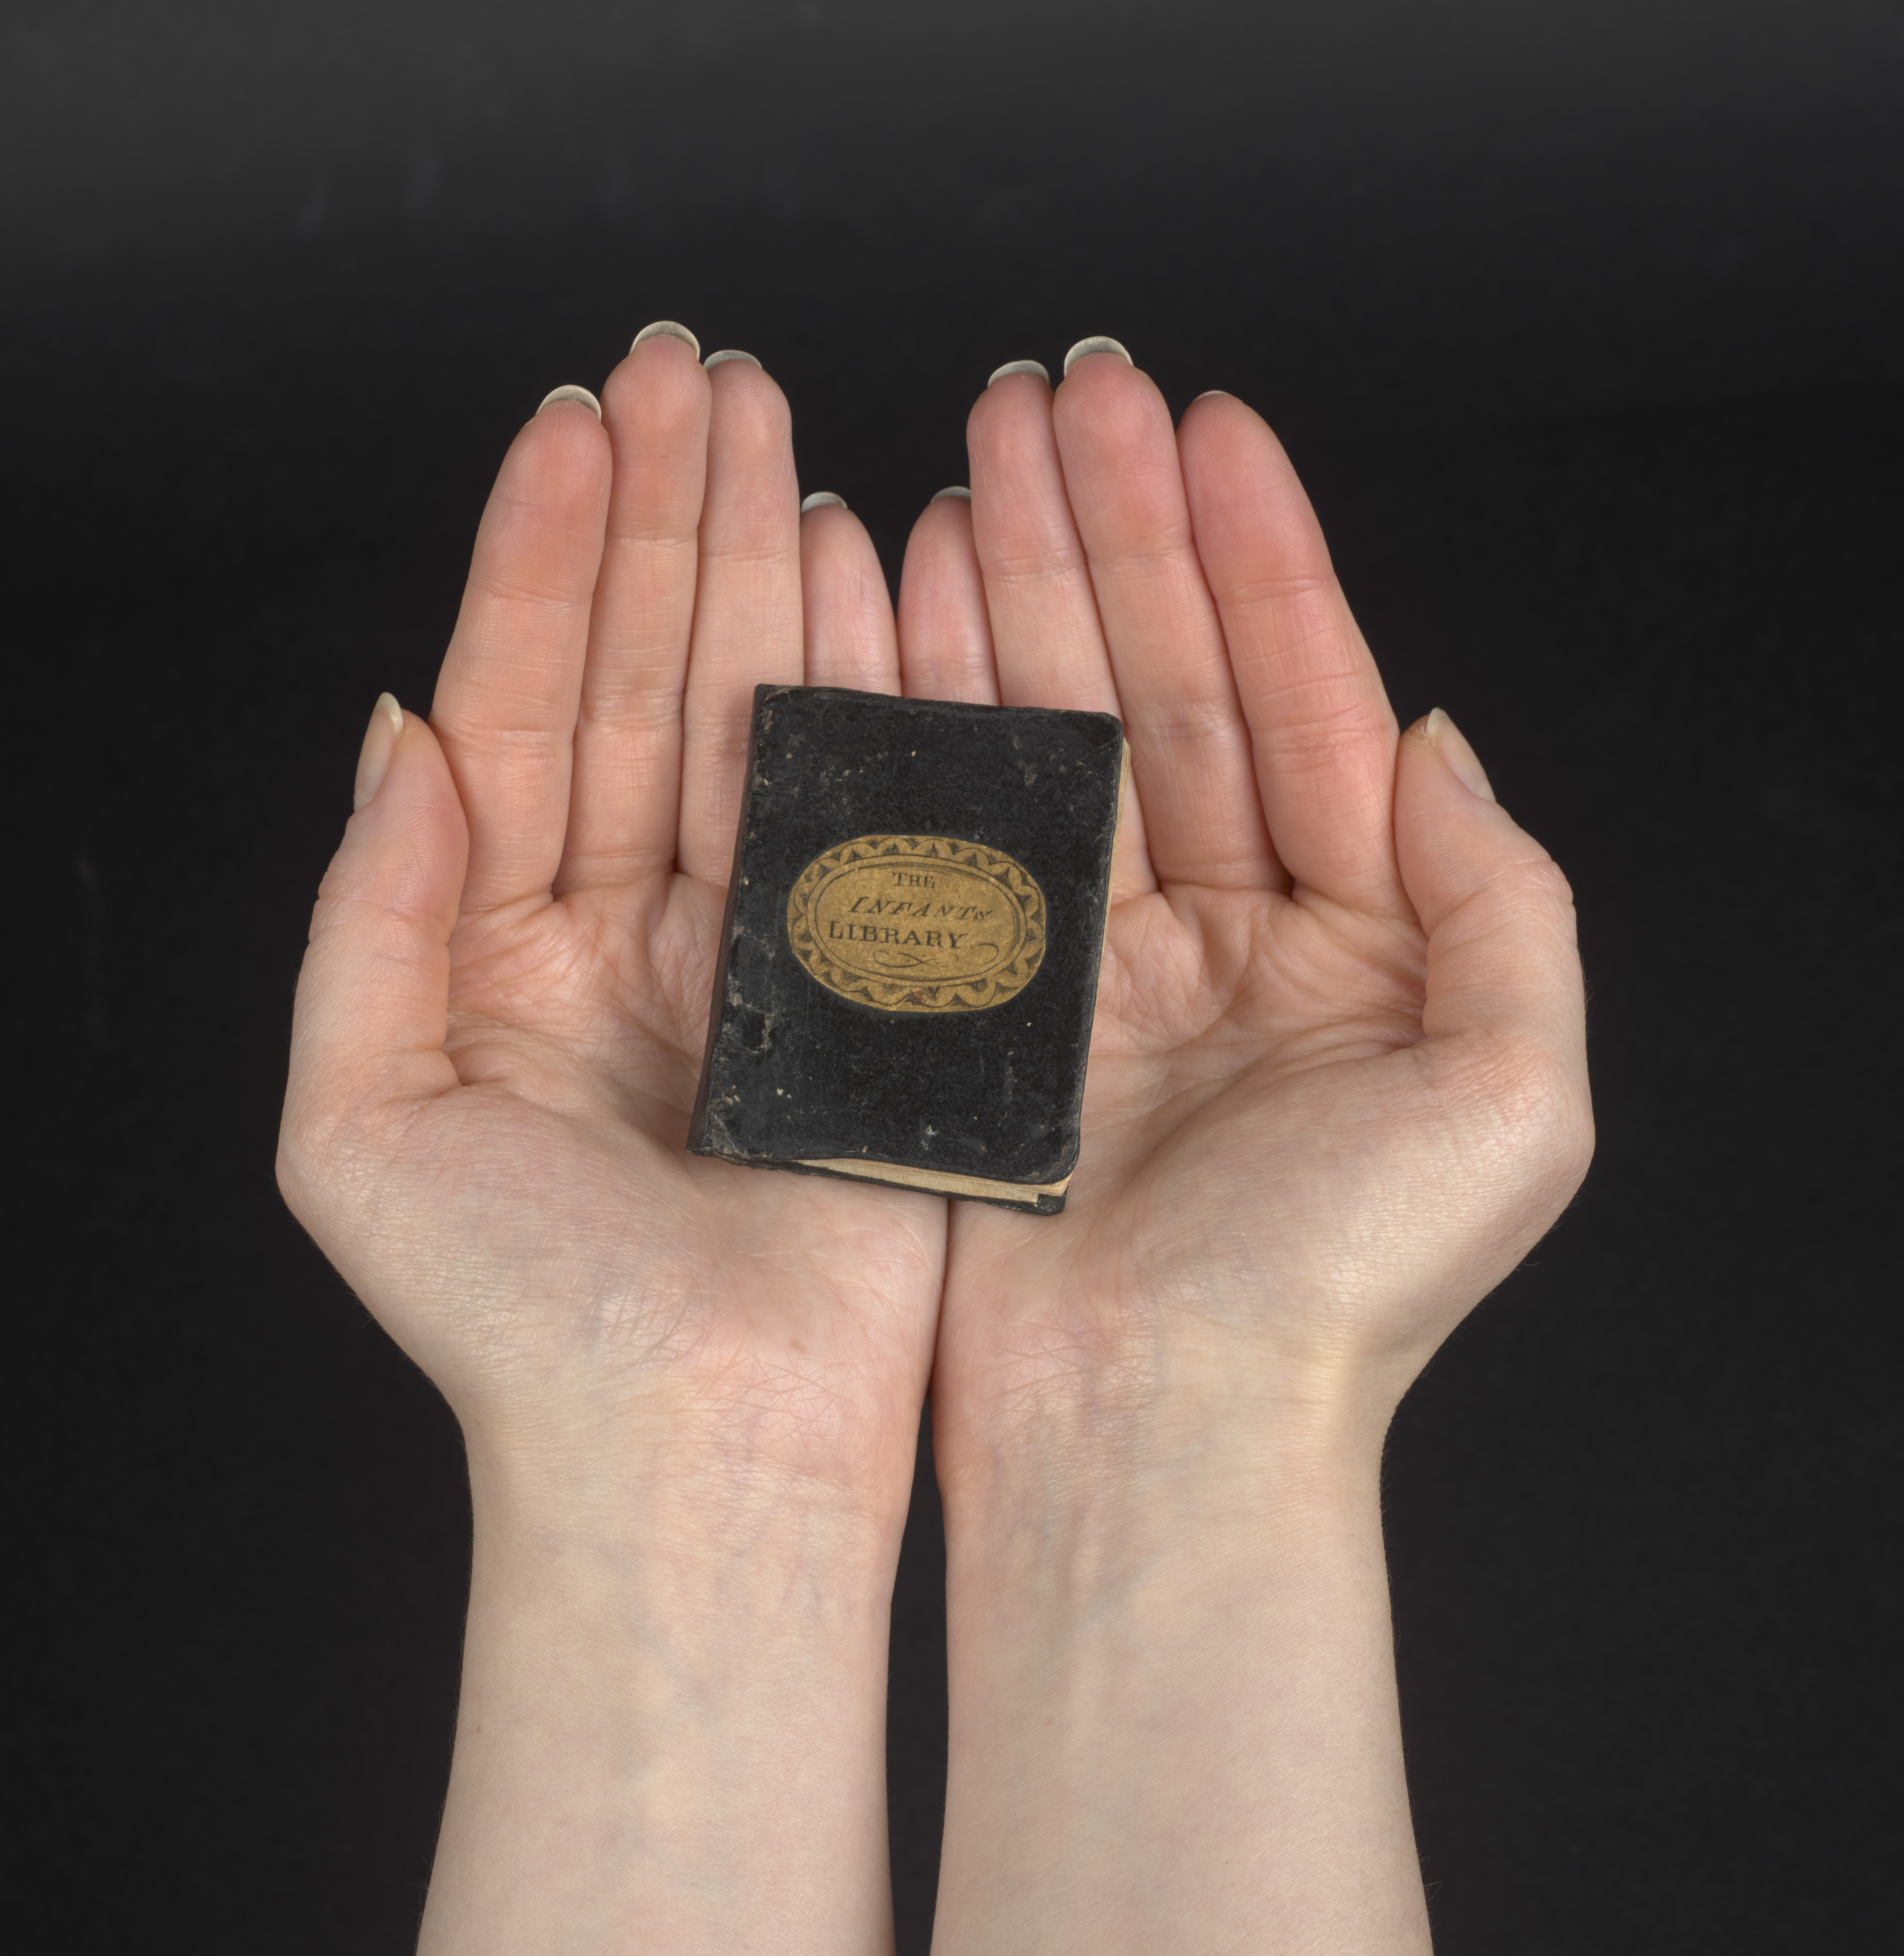 An adult's hand with a mini book in the palm. The book only covers about half of the palm.